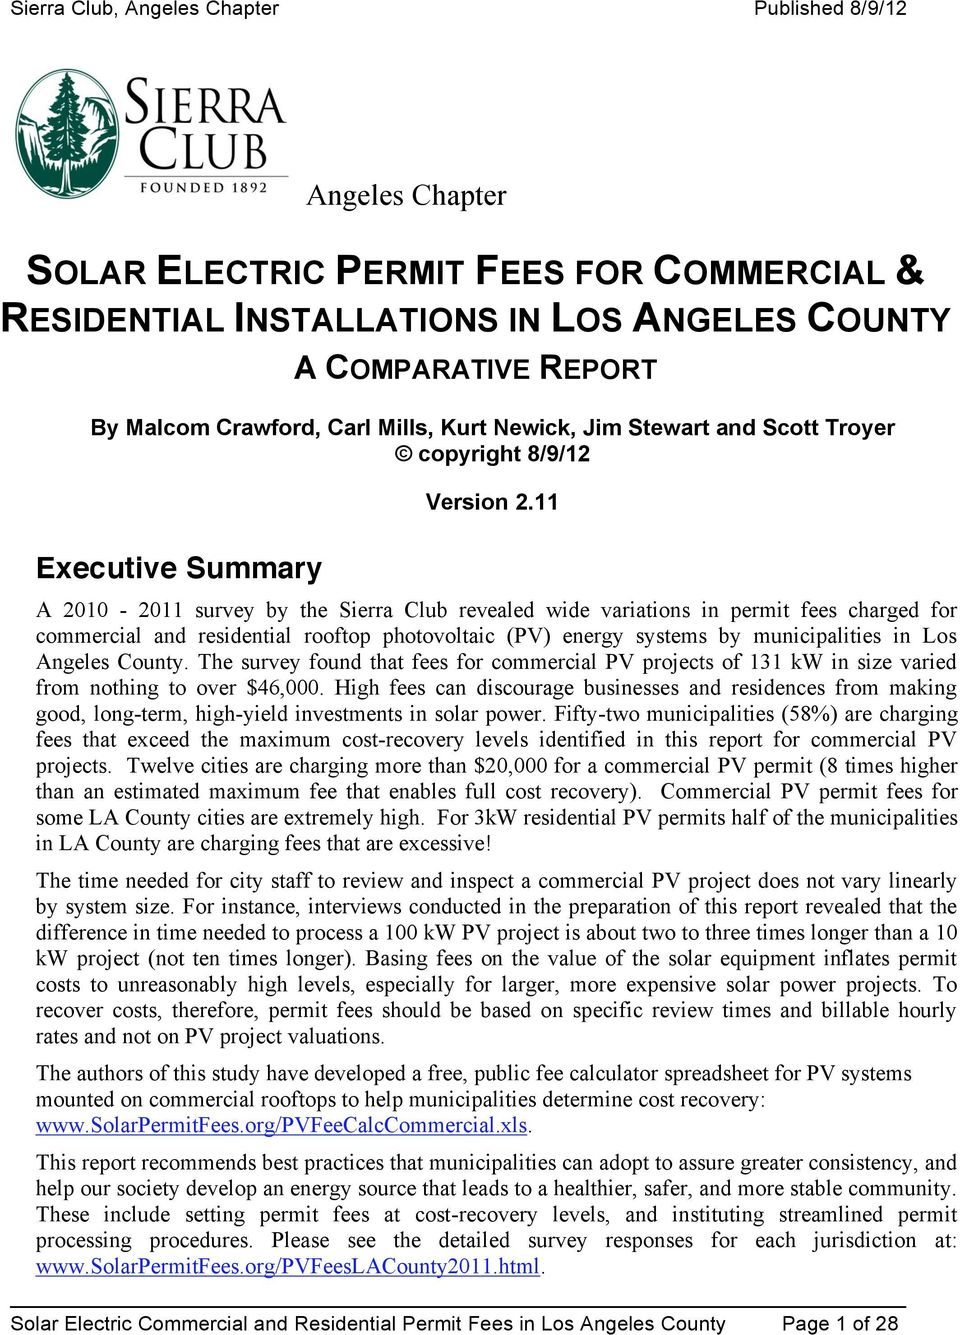 11 Executive Summary A 2010-2011 survey by the Sierra Club revealed wide variations in permit fees charged for commercial and residential rooftop photovoltaic (PV) energy systems by municipalities in